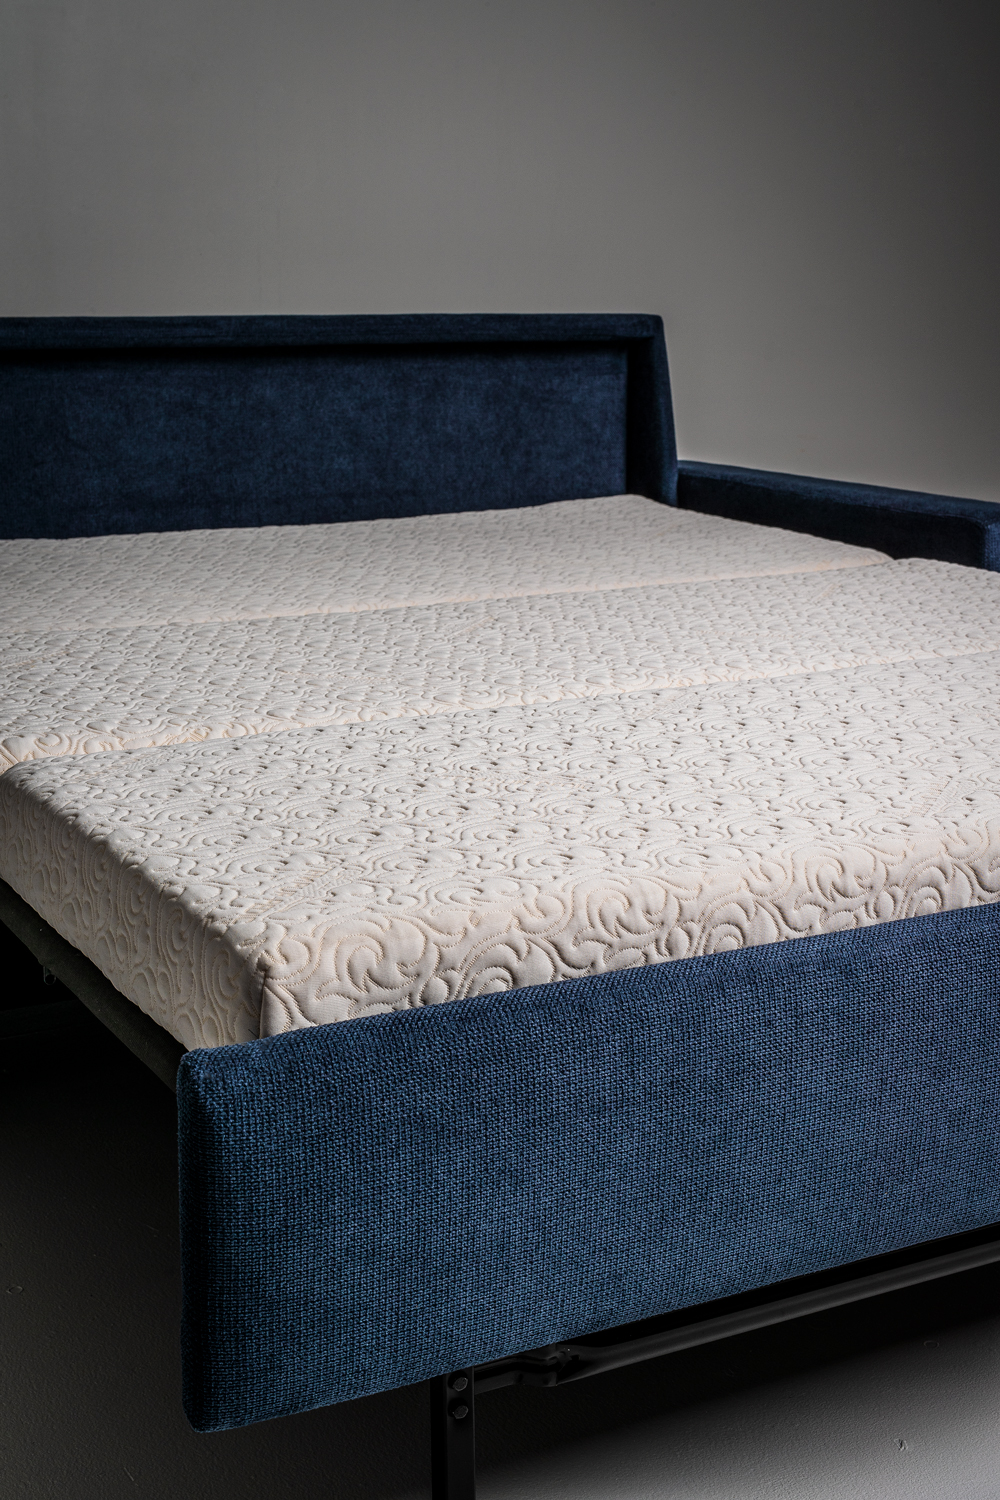 - Buying Guide: The Sleeper Sofa Doesn't Have To Be An Oxymoron